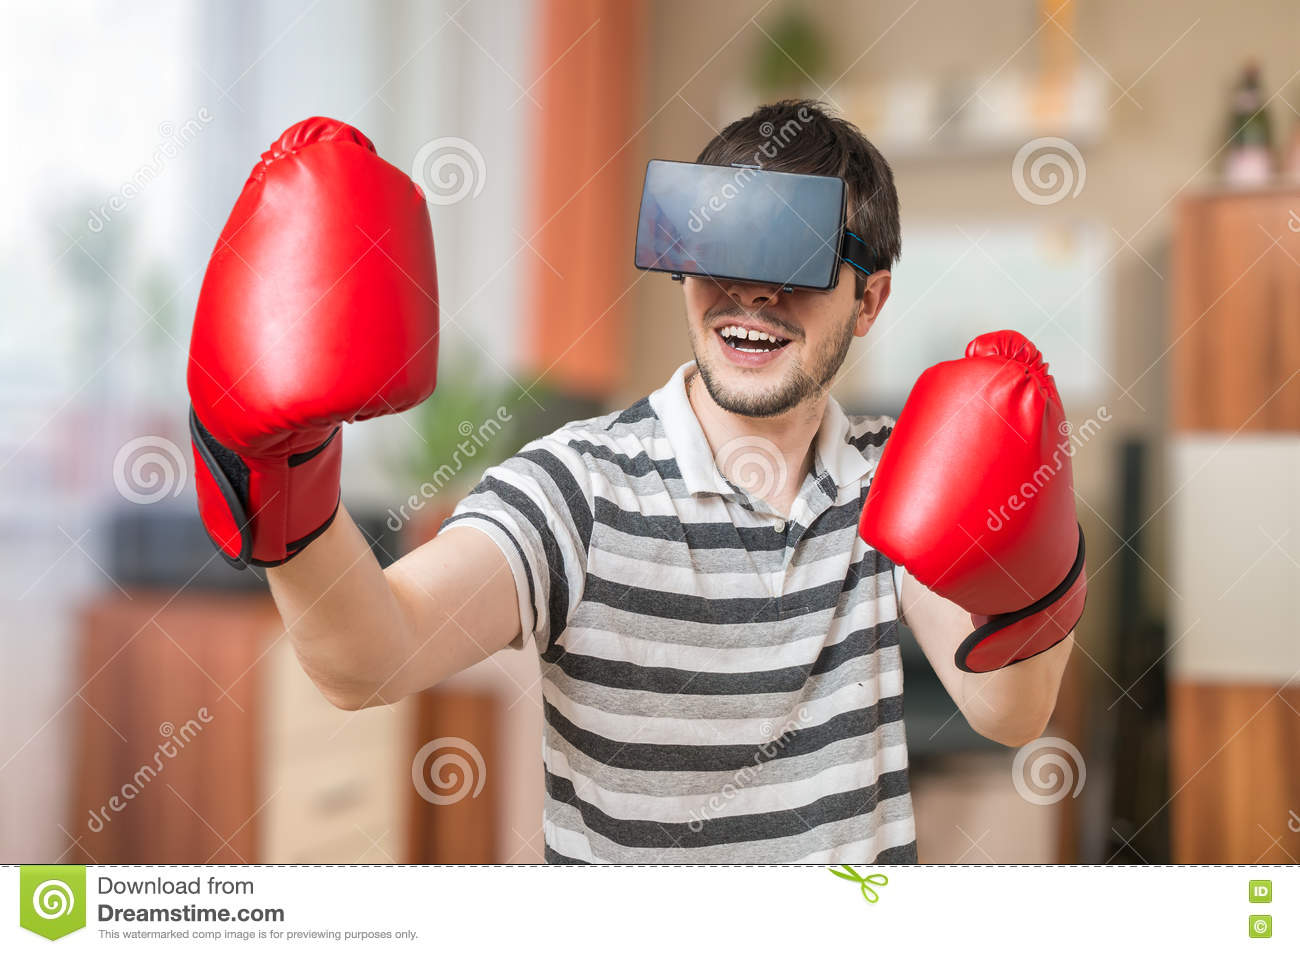 ca15b6f8f5ab Man Is Boxing In 3D Virtual Reality Video Game With Vr Headset Stock ...